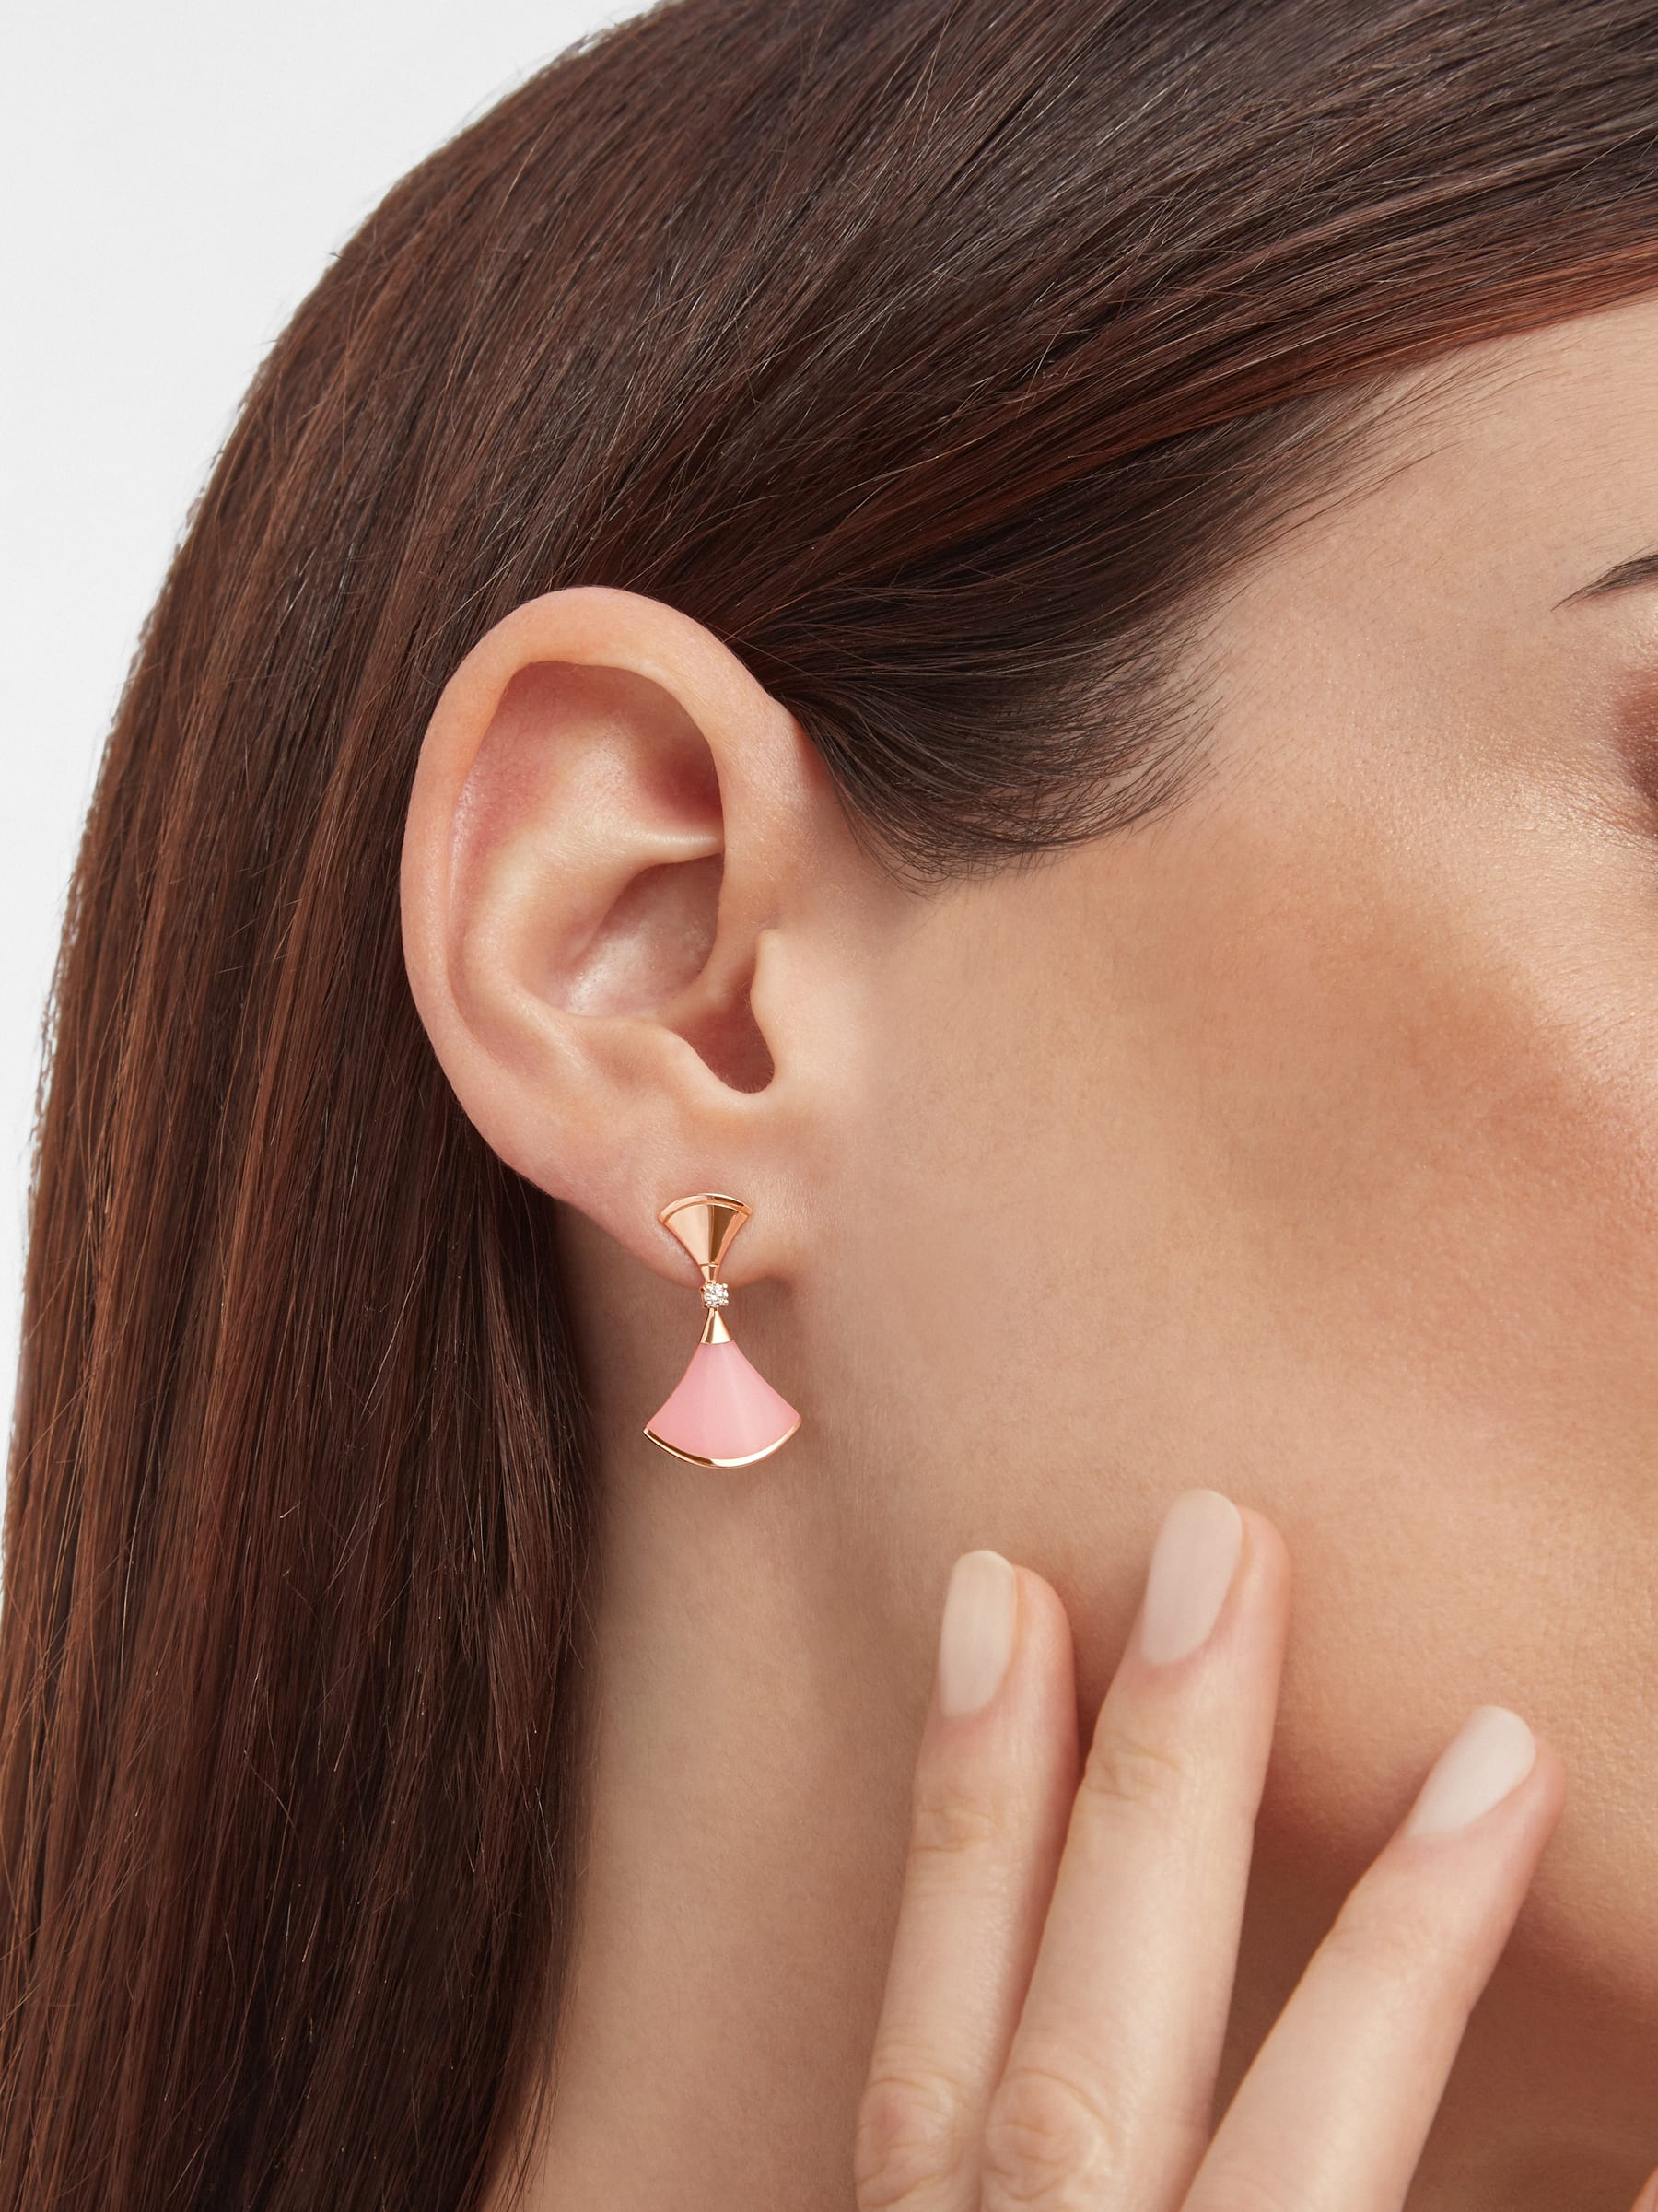 DIVAS' DREAM earrings in 18 kt rose gold set with pink opal inserts and pavé diamonds 357862 image 3